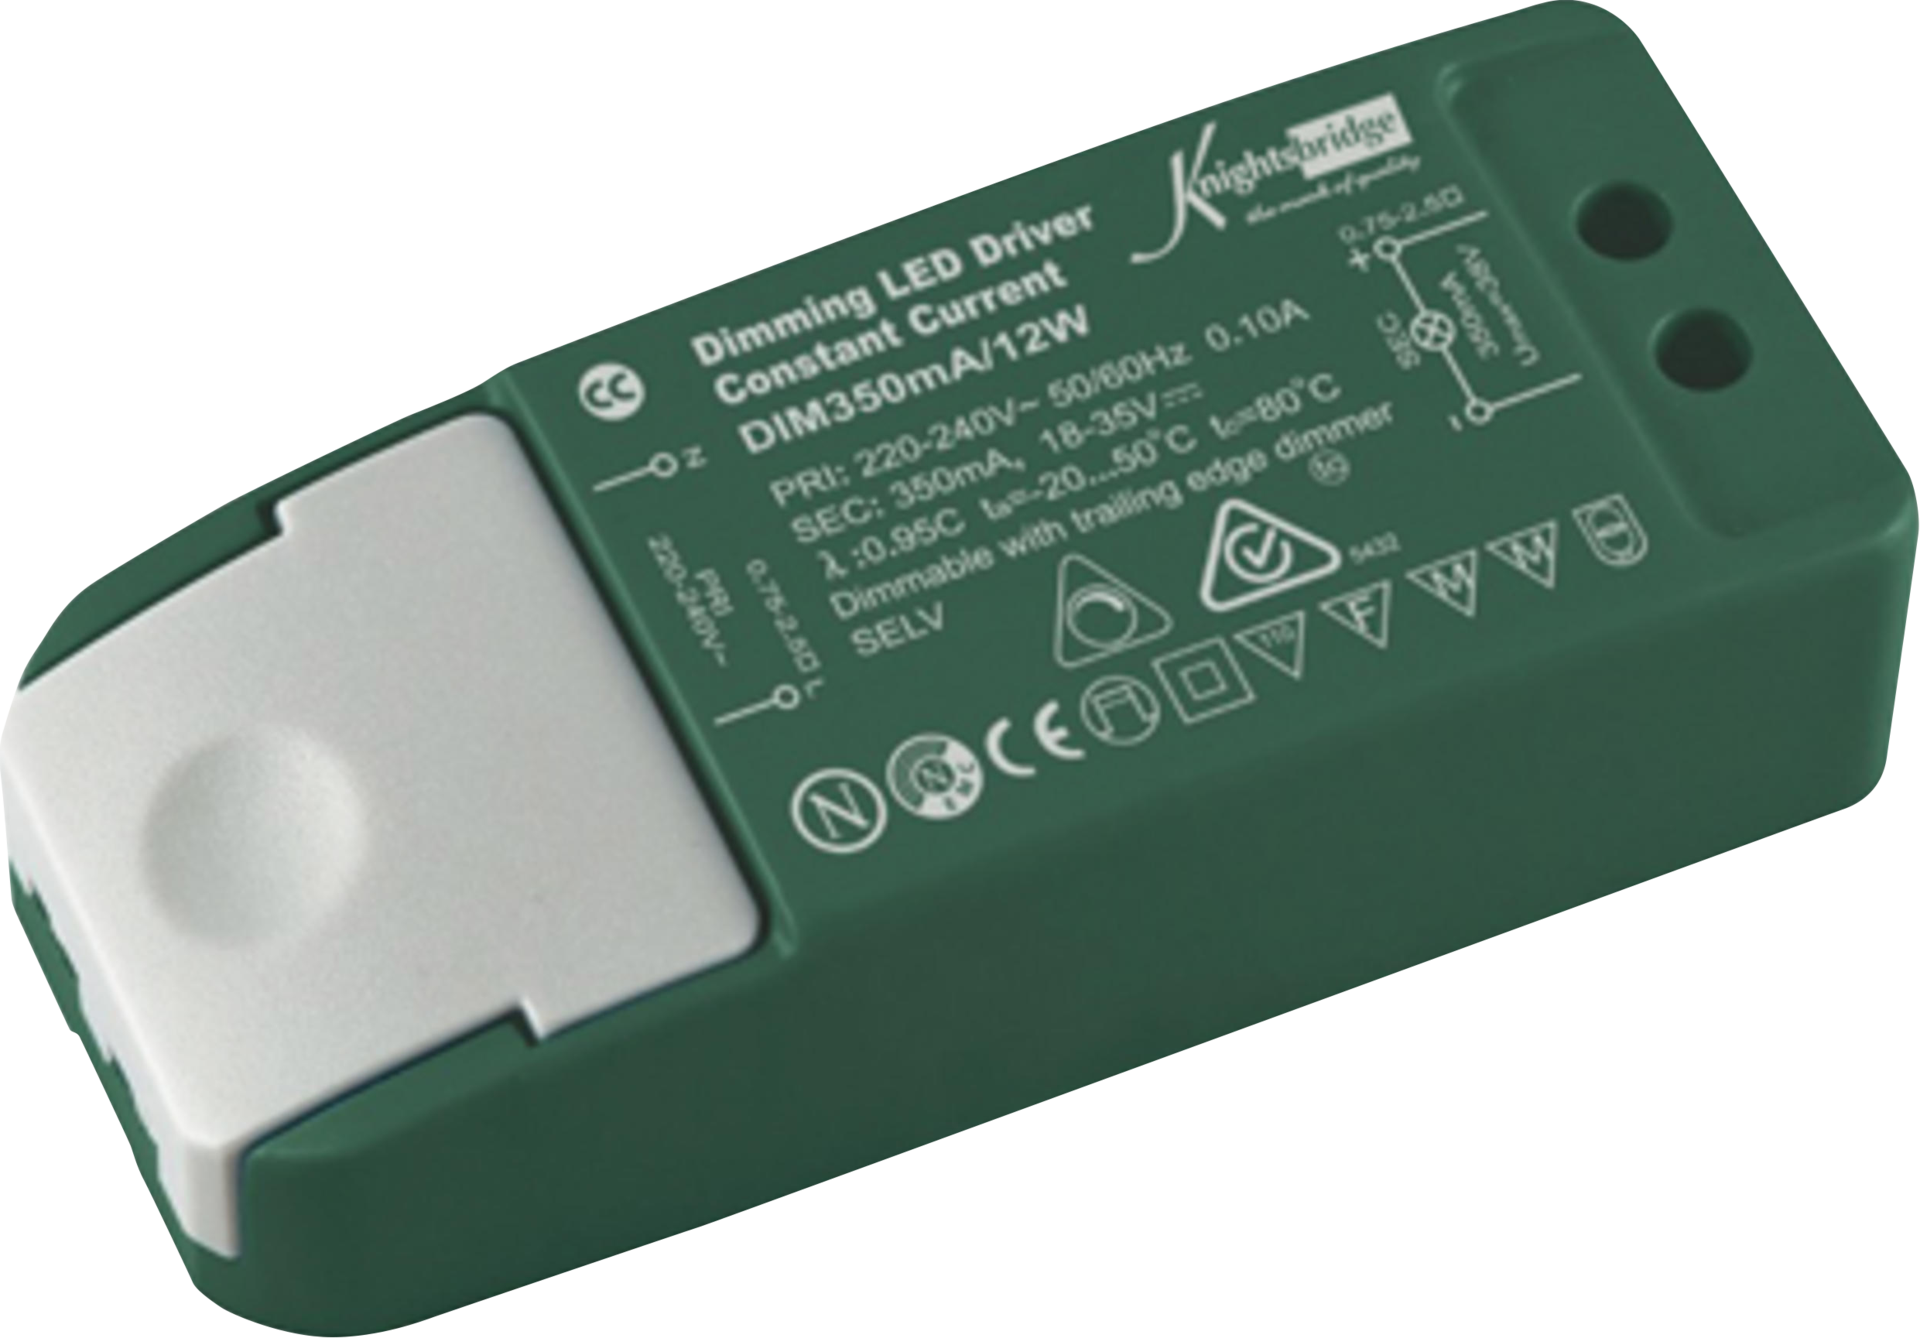 LED DRIVER 350 mA 12w CONSTANT CURRENT DIMMABLE